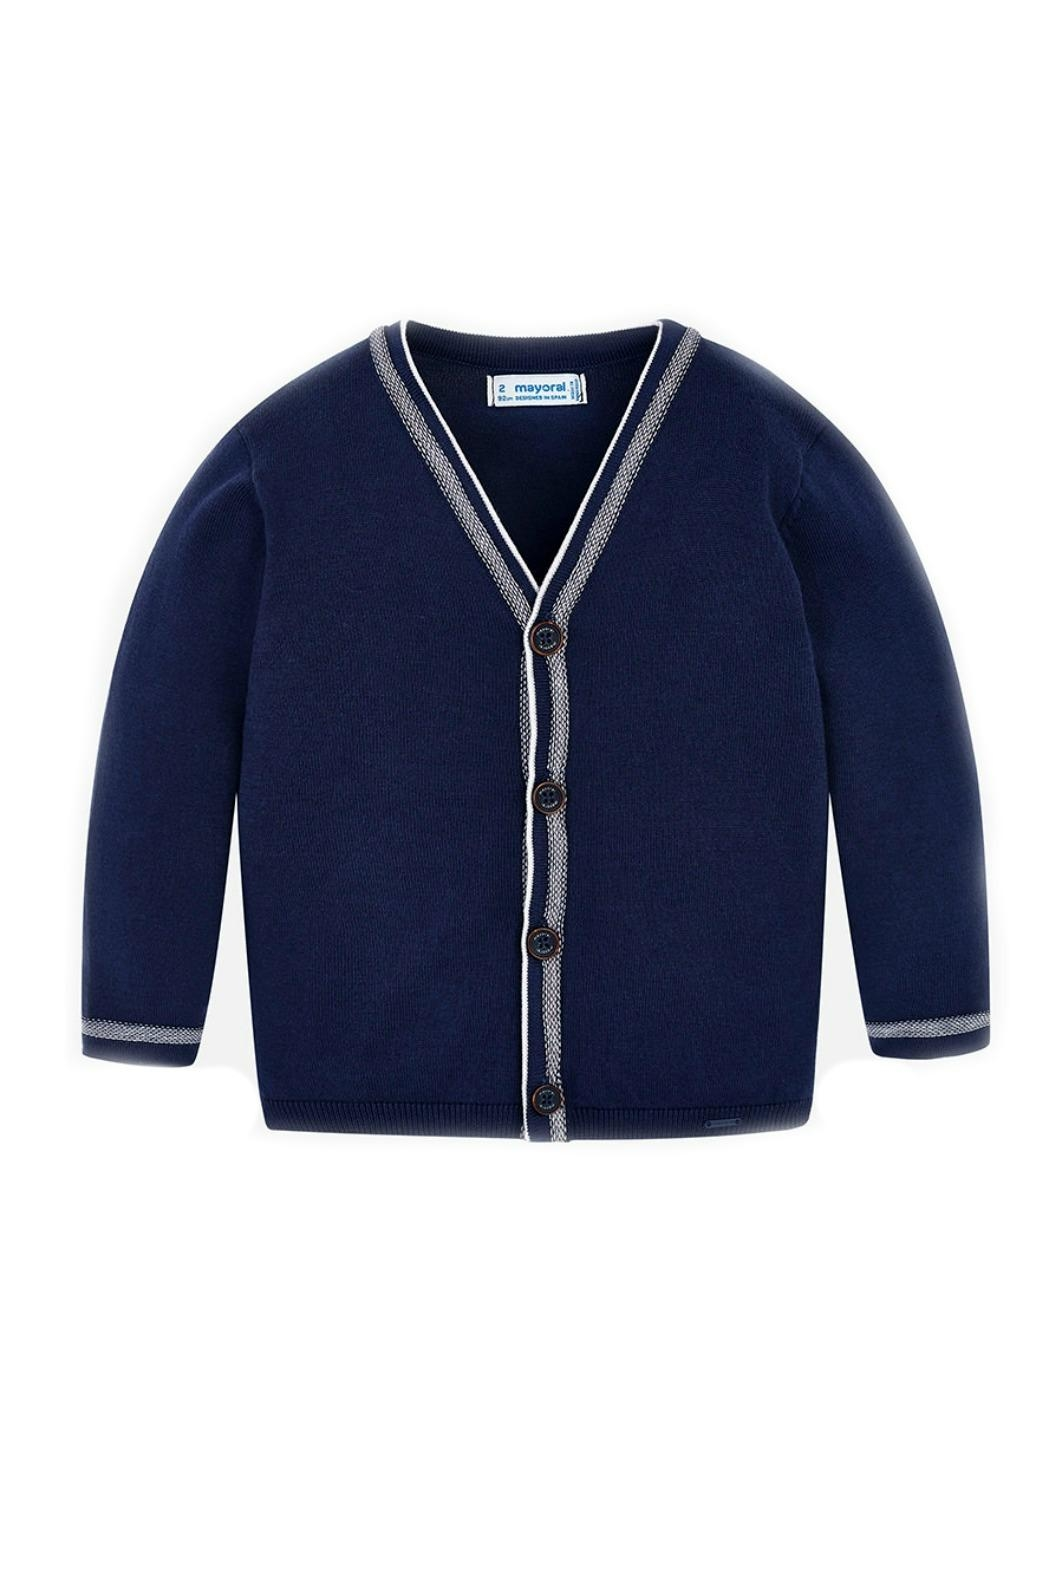 Mayoral Navy-Blue Classic Cardigan - Front Cropped Image